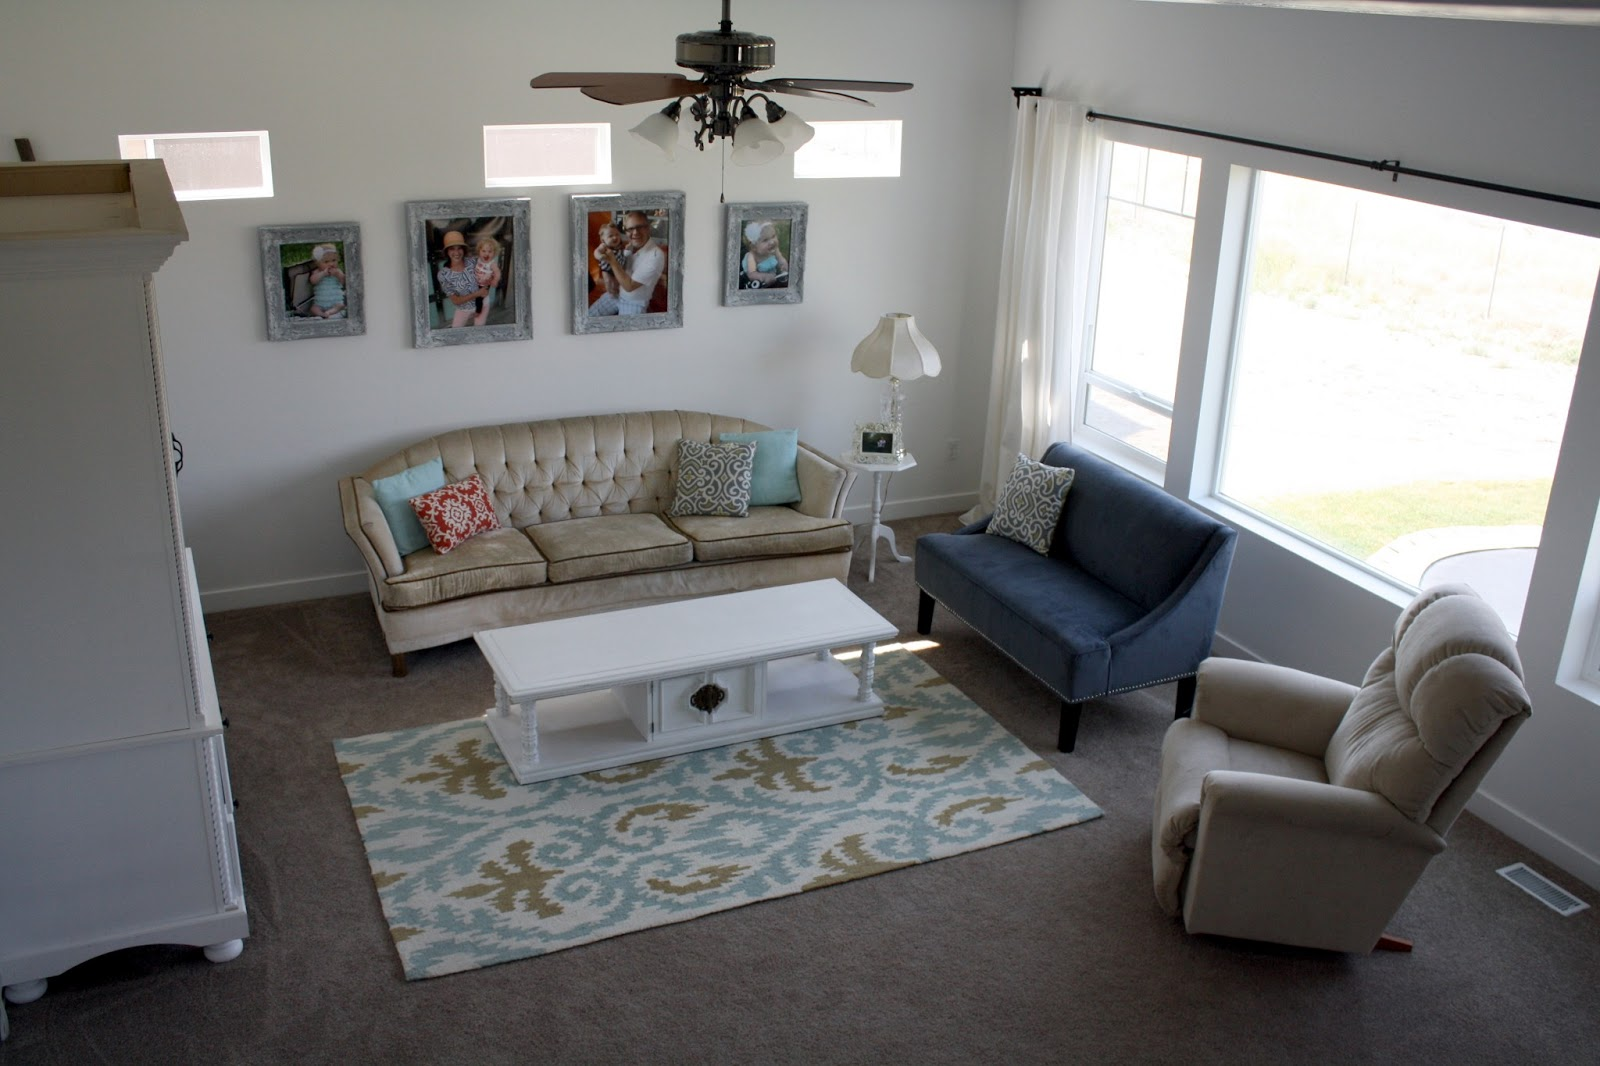 Wainscoting For Living Room Nifty Thrifty Momma Our Home Tour Living Room Reveal With